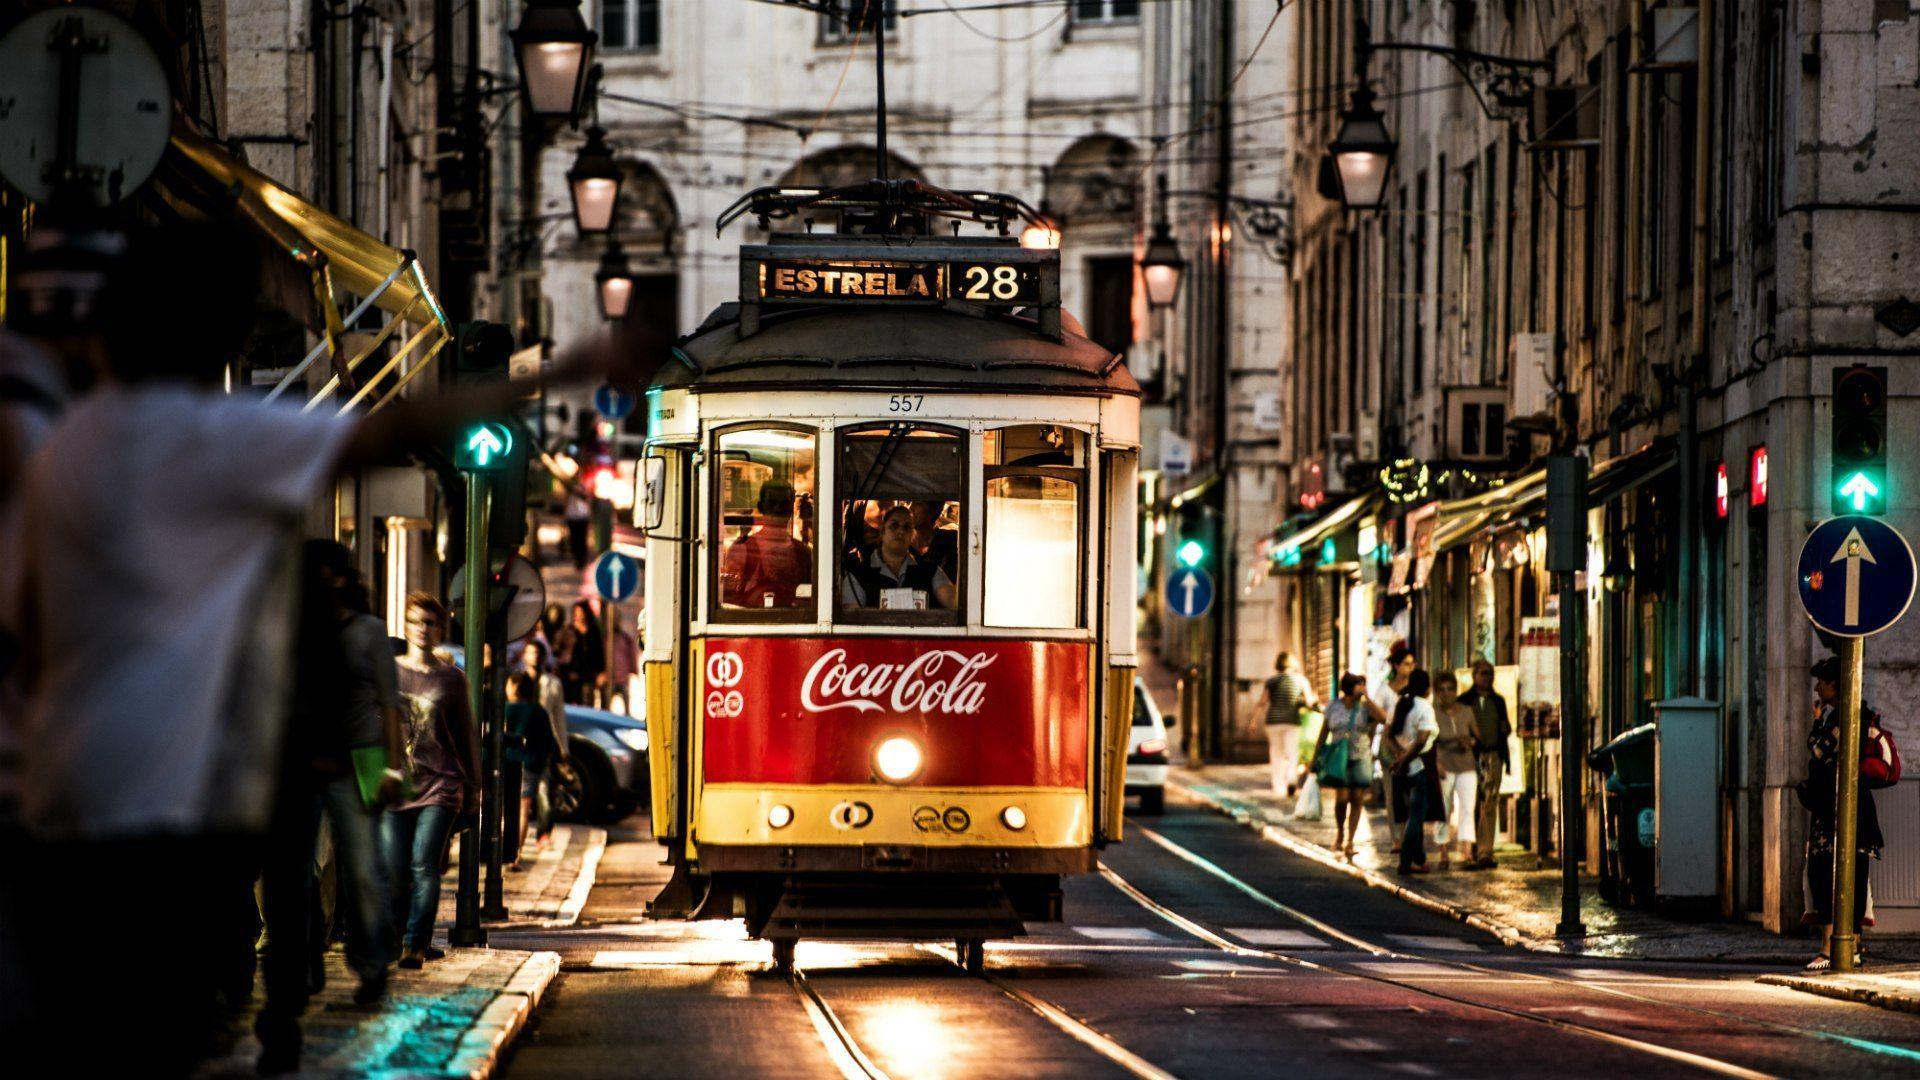 Tram in Lisbon, Portugal wallpapers and images - wallpapers ...